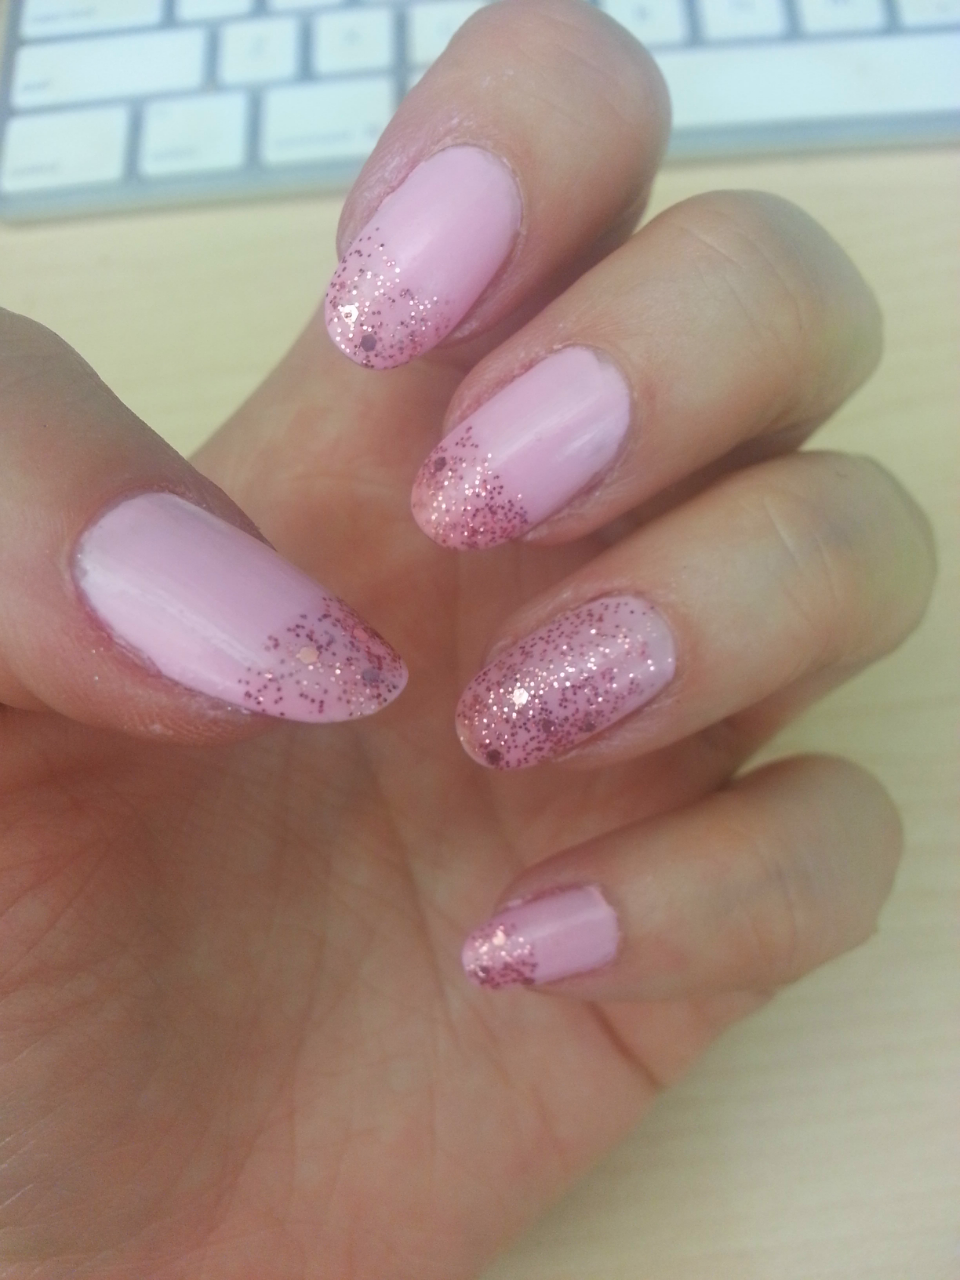 Nails of the Day #6 (Gorgeous pinks)